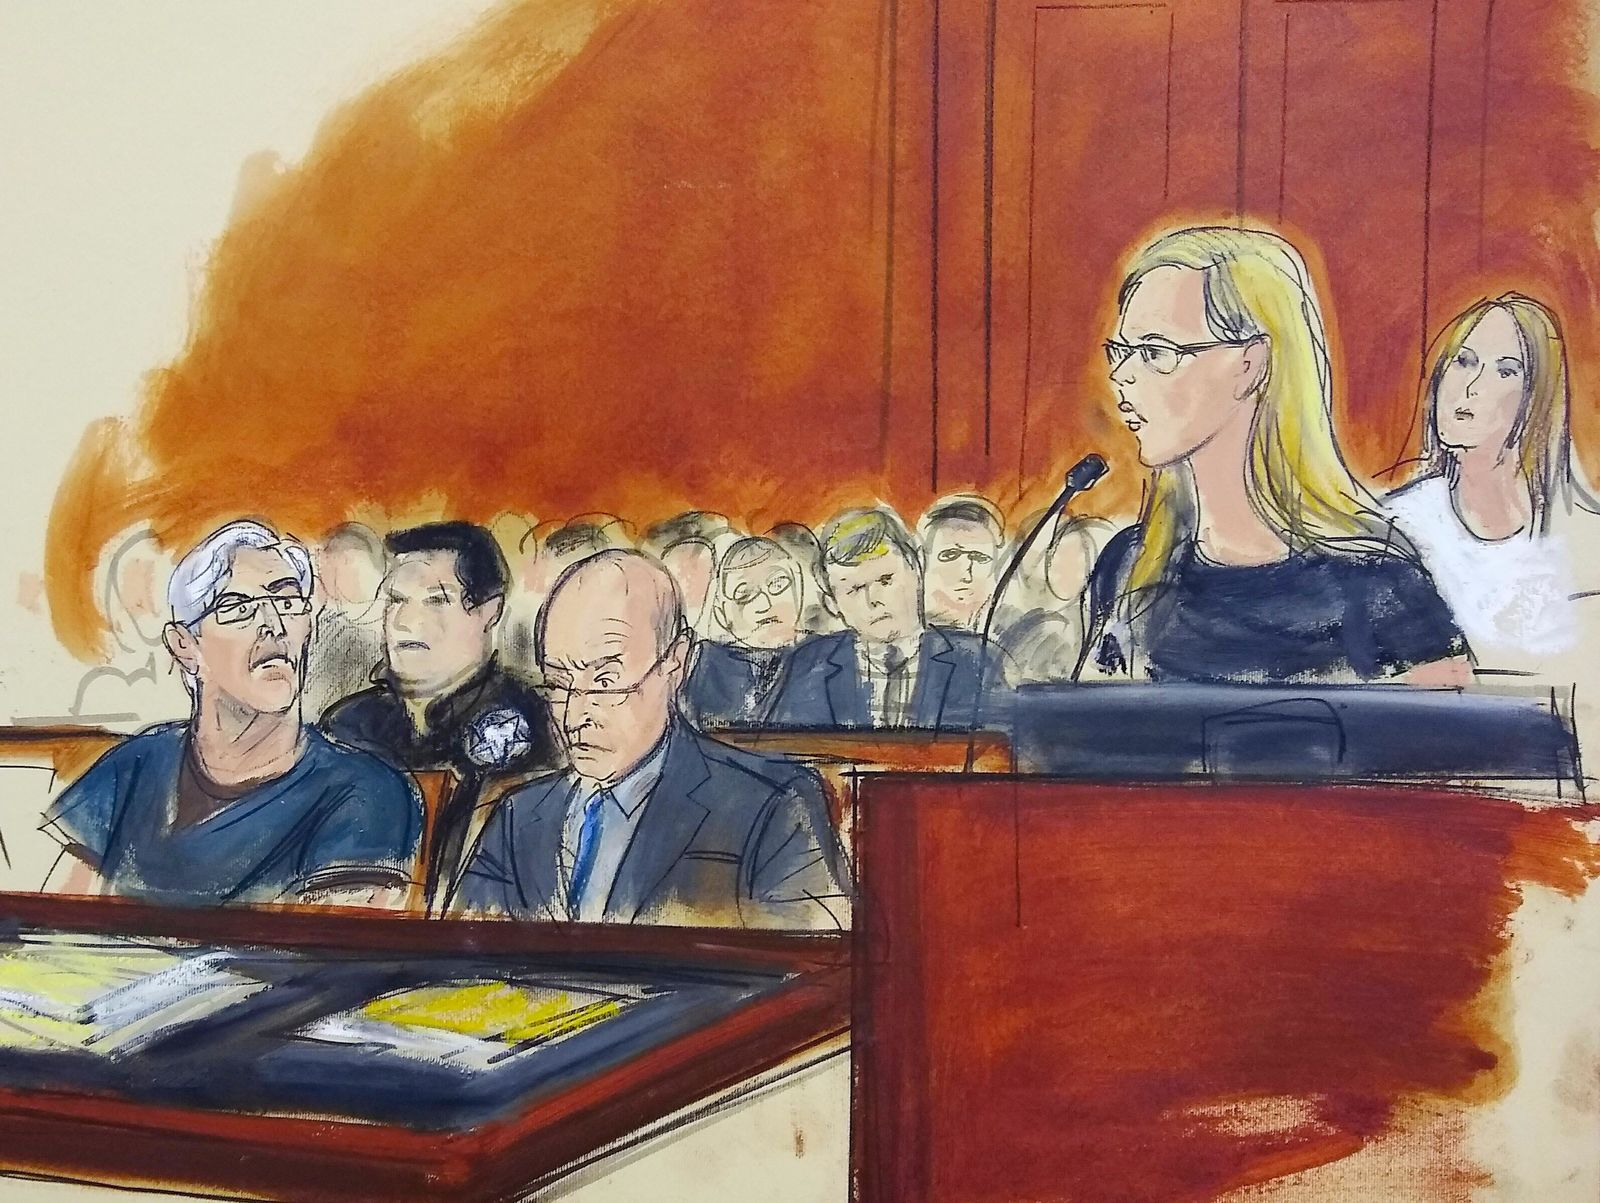 In this courtroom artist's sketch, defendant Jeffrey Epstein, left, listens as accuser Annie Farmer, second from right, speaks during a bail hearing in federal court, Monday, July 15, 2019 in New York.. (Elizabeth Williams via AP)